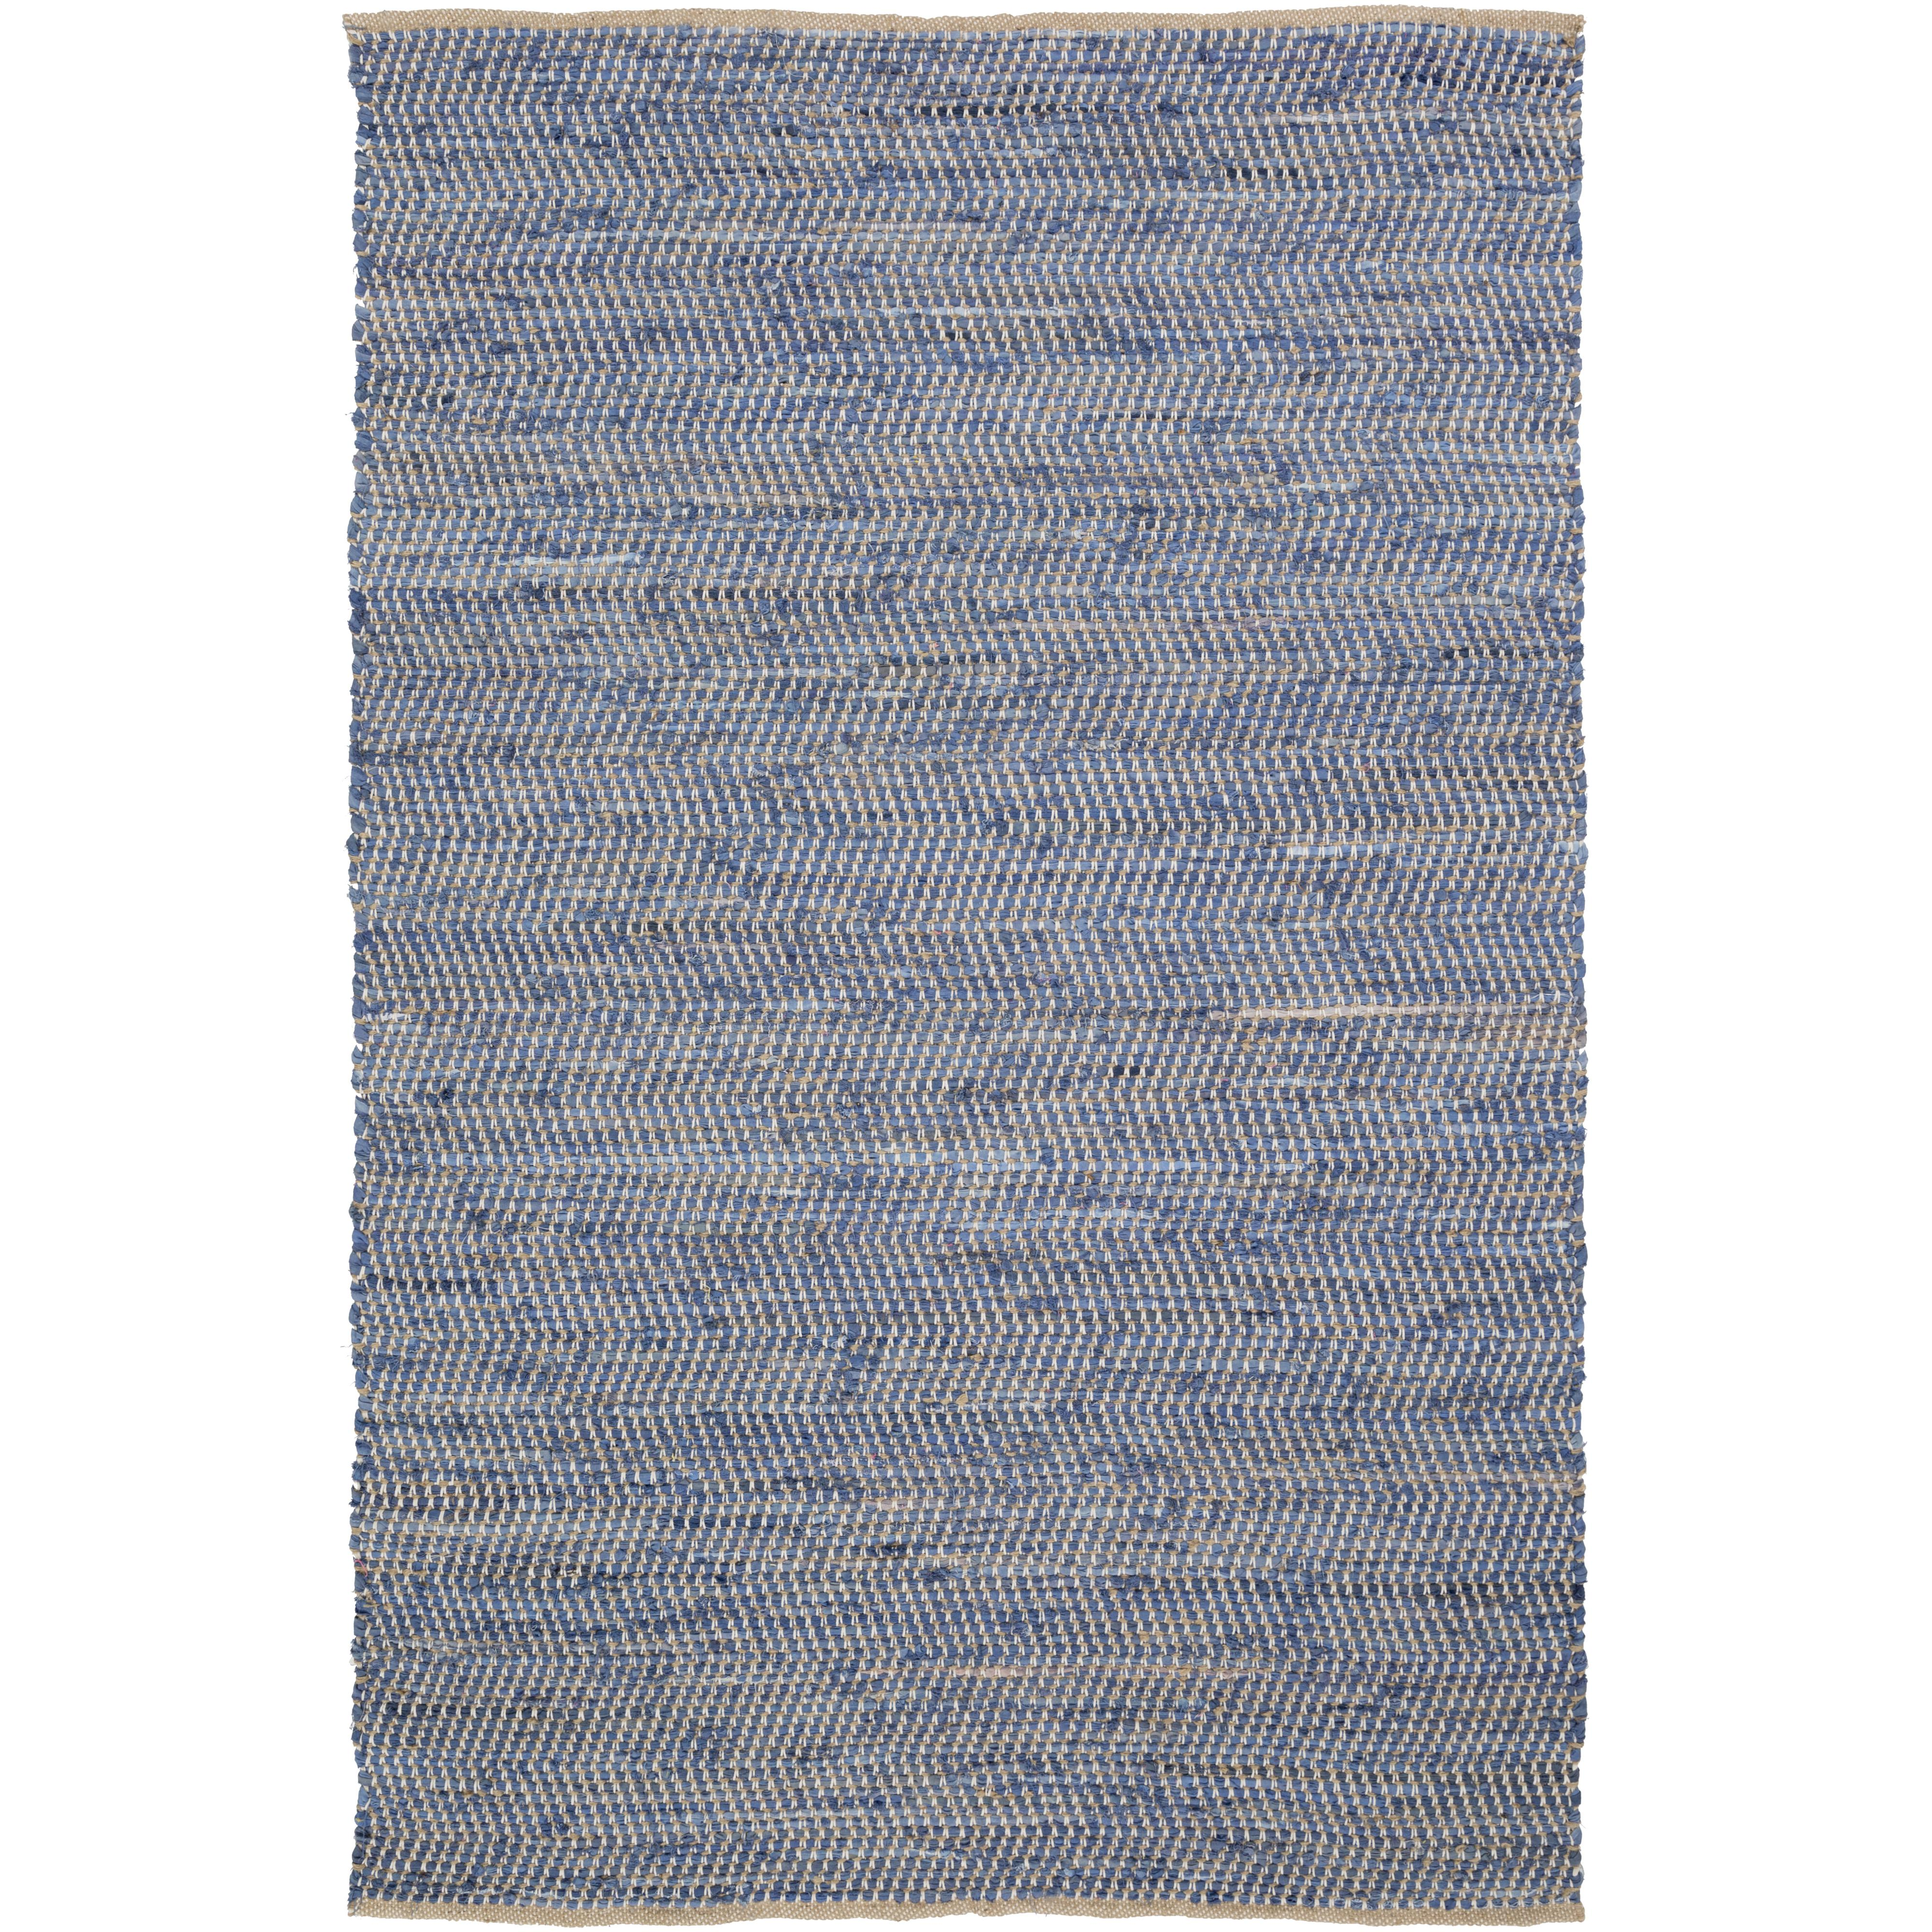 Surya Rugs Fanore 2' x 3' - Item Number: FAN3002-23